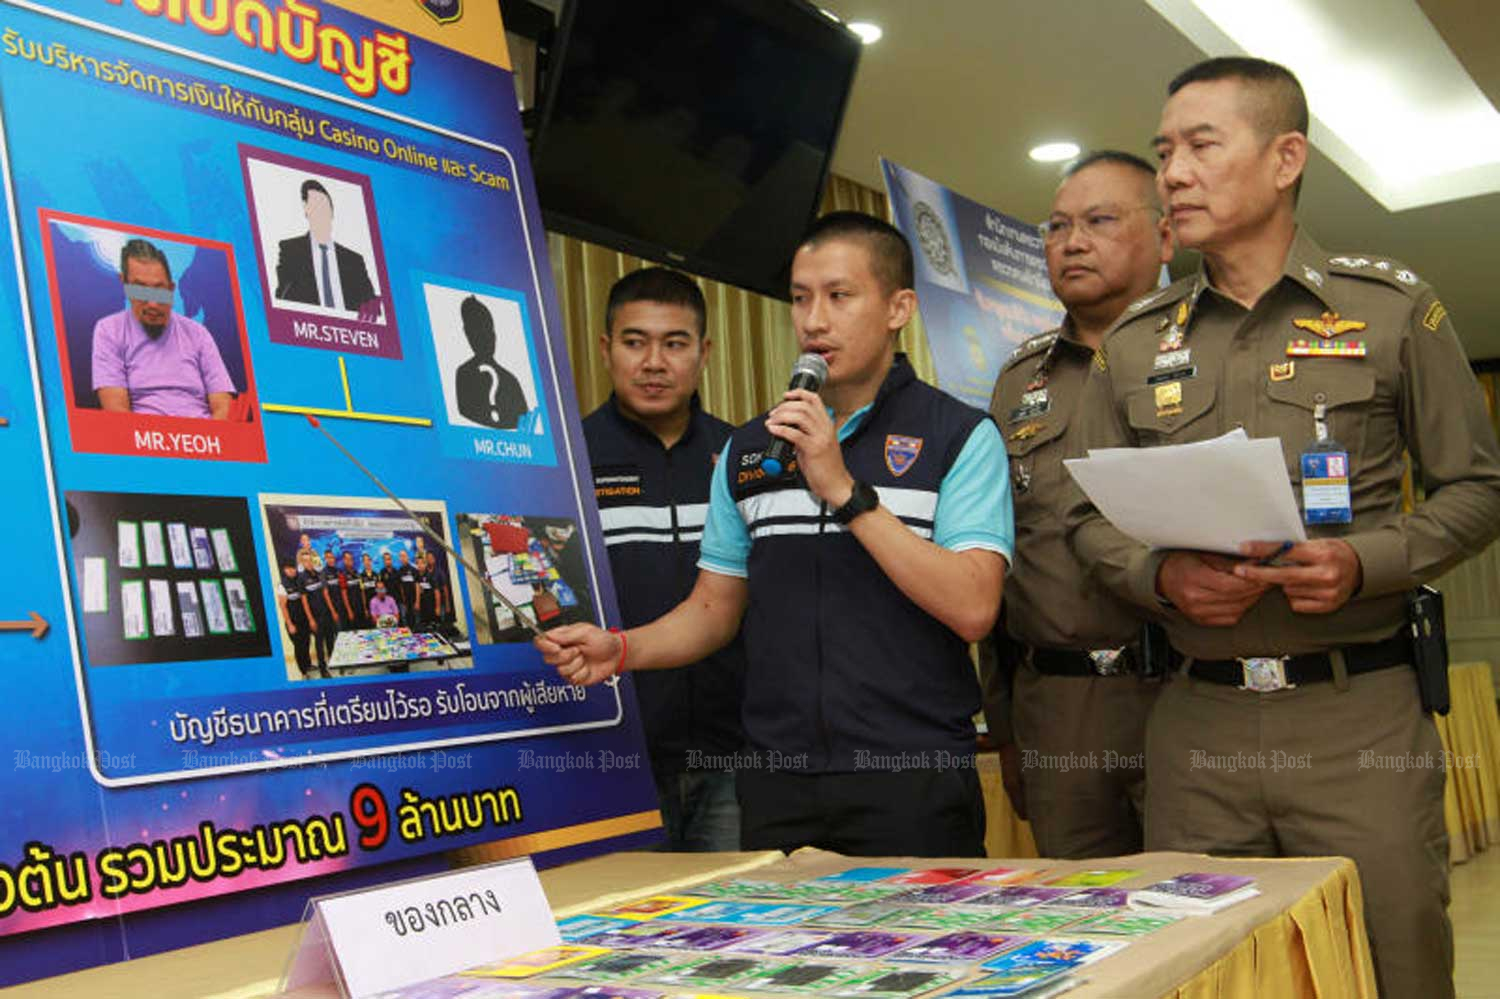 Immigration police commissioner Sompong Chingduang, right, is seen in a press conference at the Immigration Bureau in Bangkok on Tuesday. (Photo by Pawat Laopaisarntaksin)